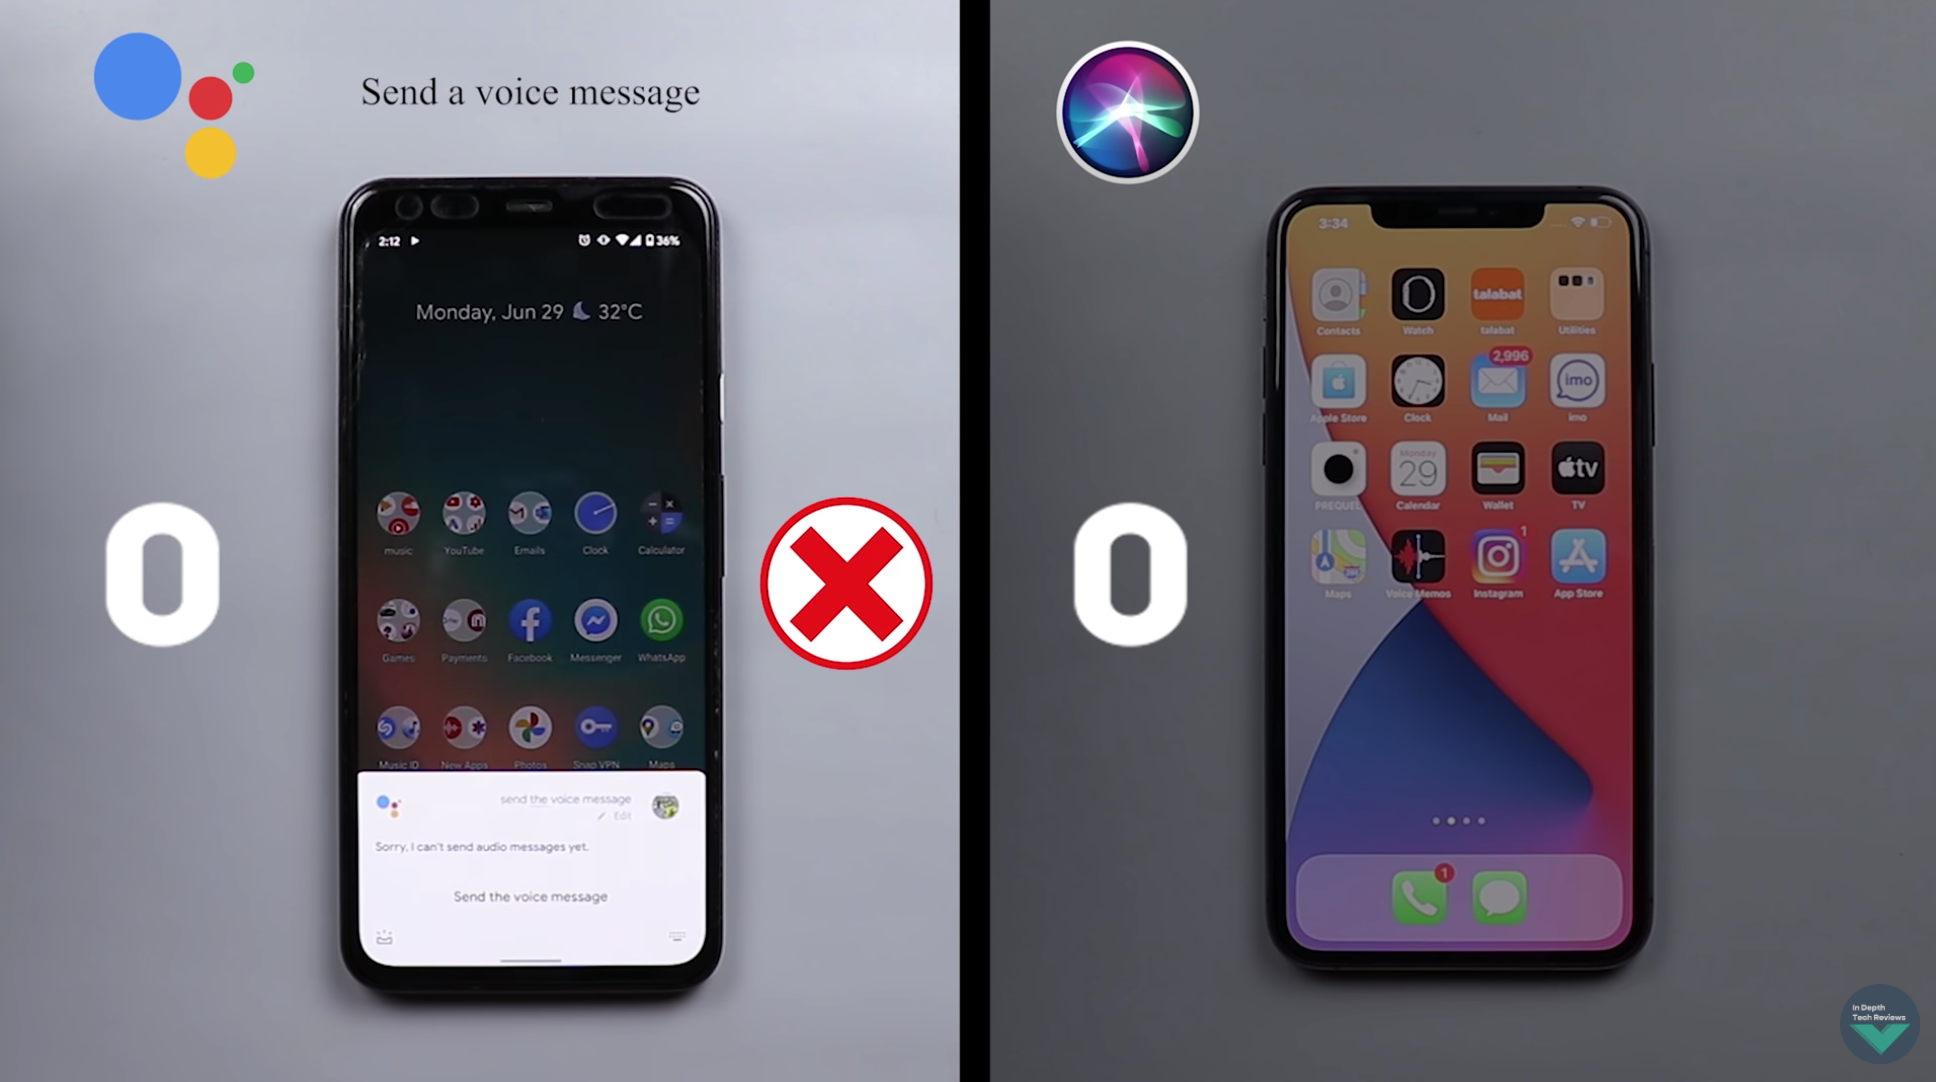 iOS 14 Siri Comparison to Google Assistant Shows Former Continues to Lag Behind